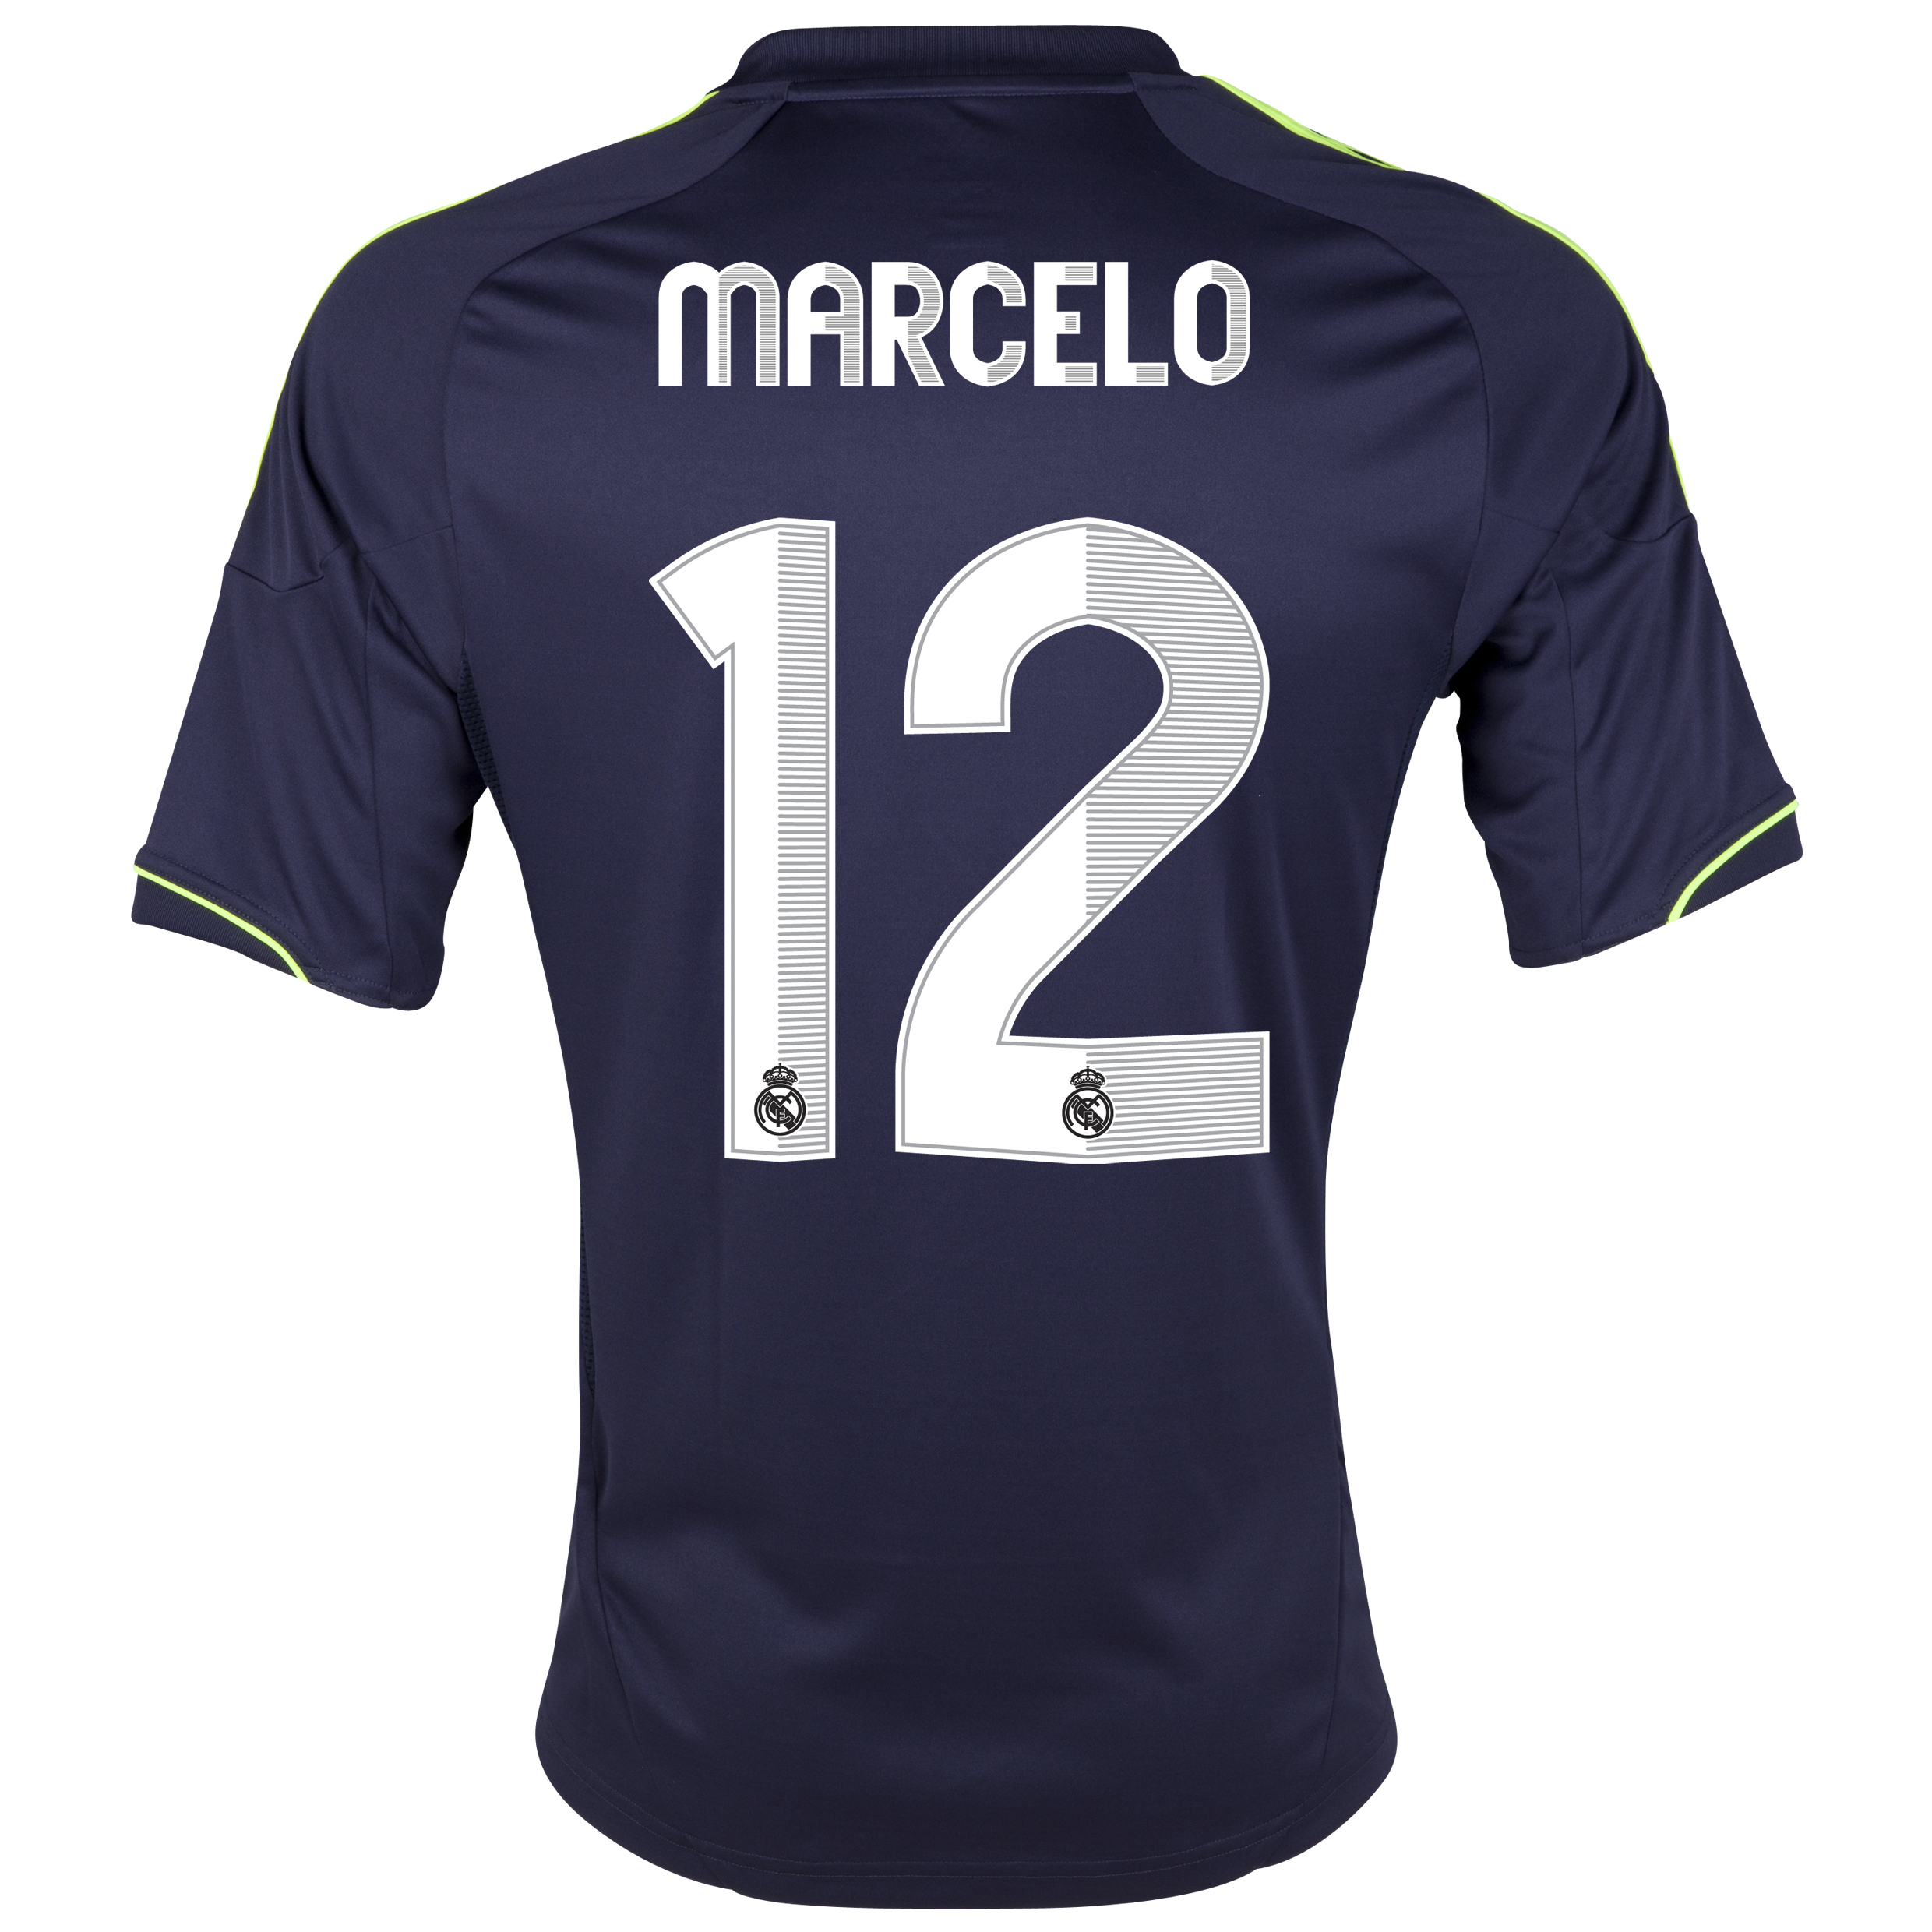 Camiseta visitante Real Madrid 2012/13 con impresin 12 Marcelo